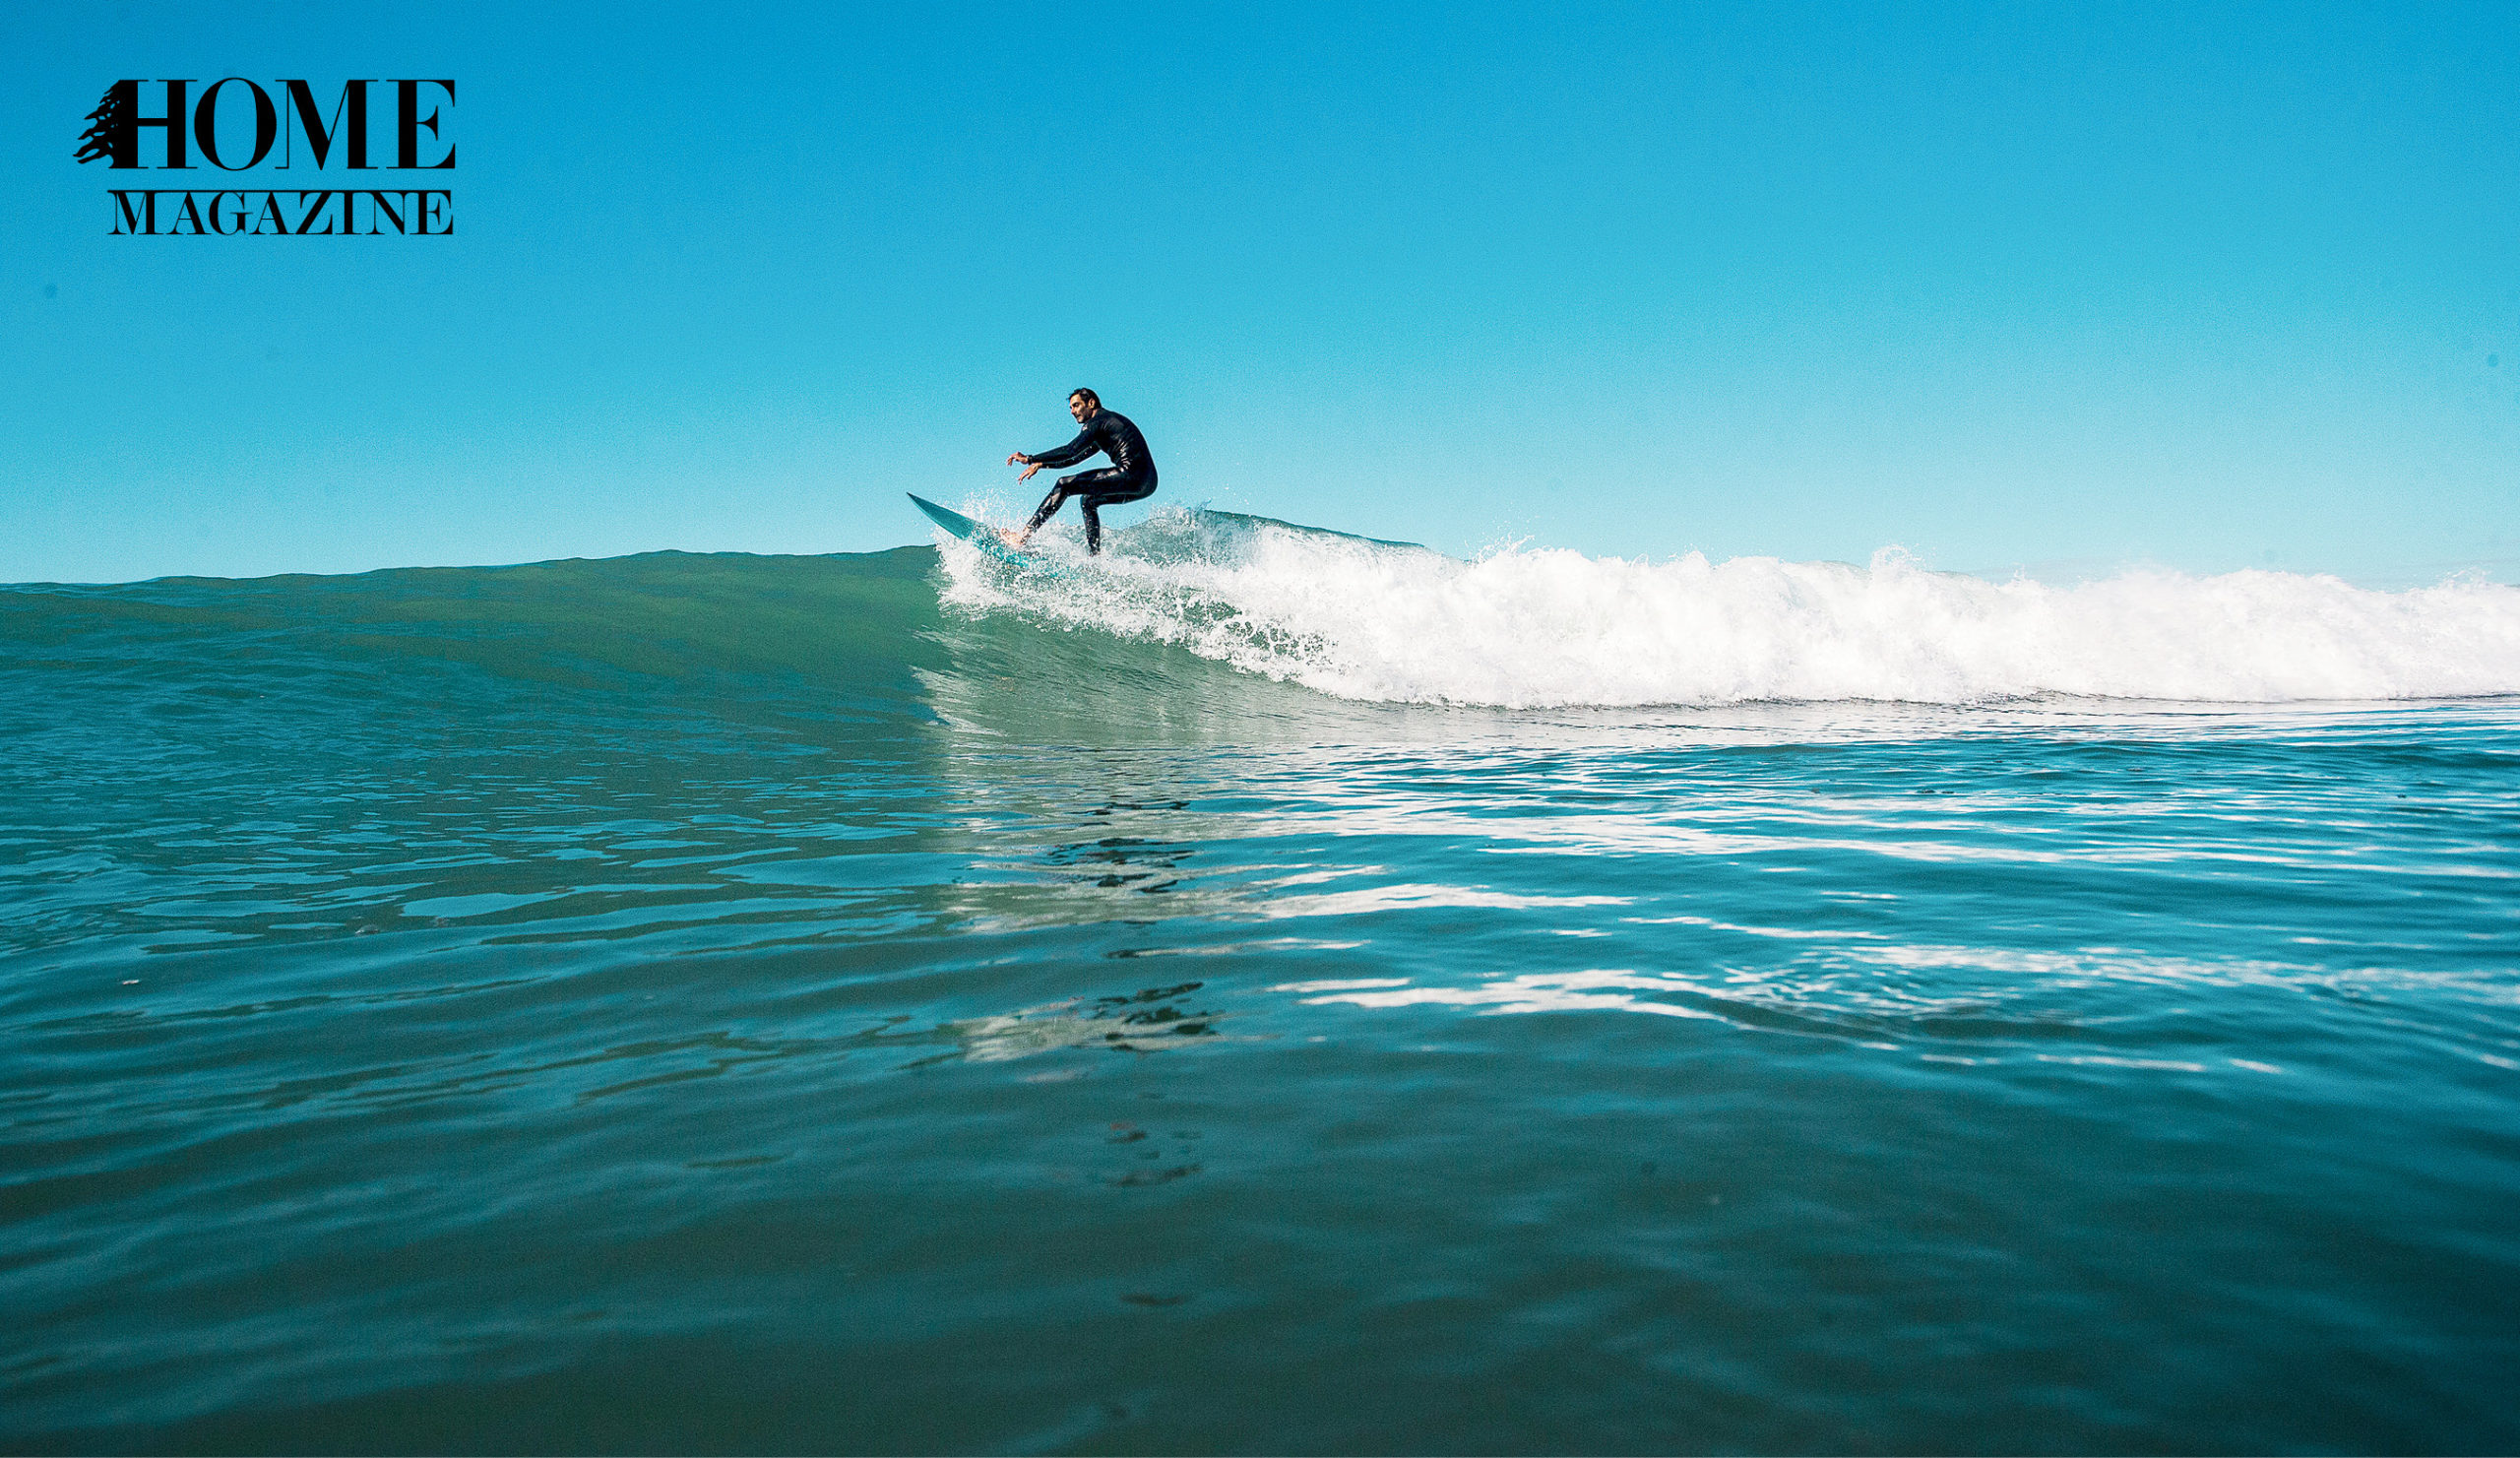 Man riding a board on waves of sea